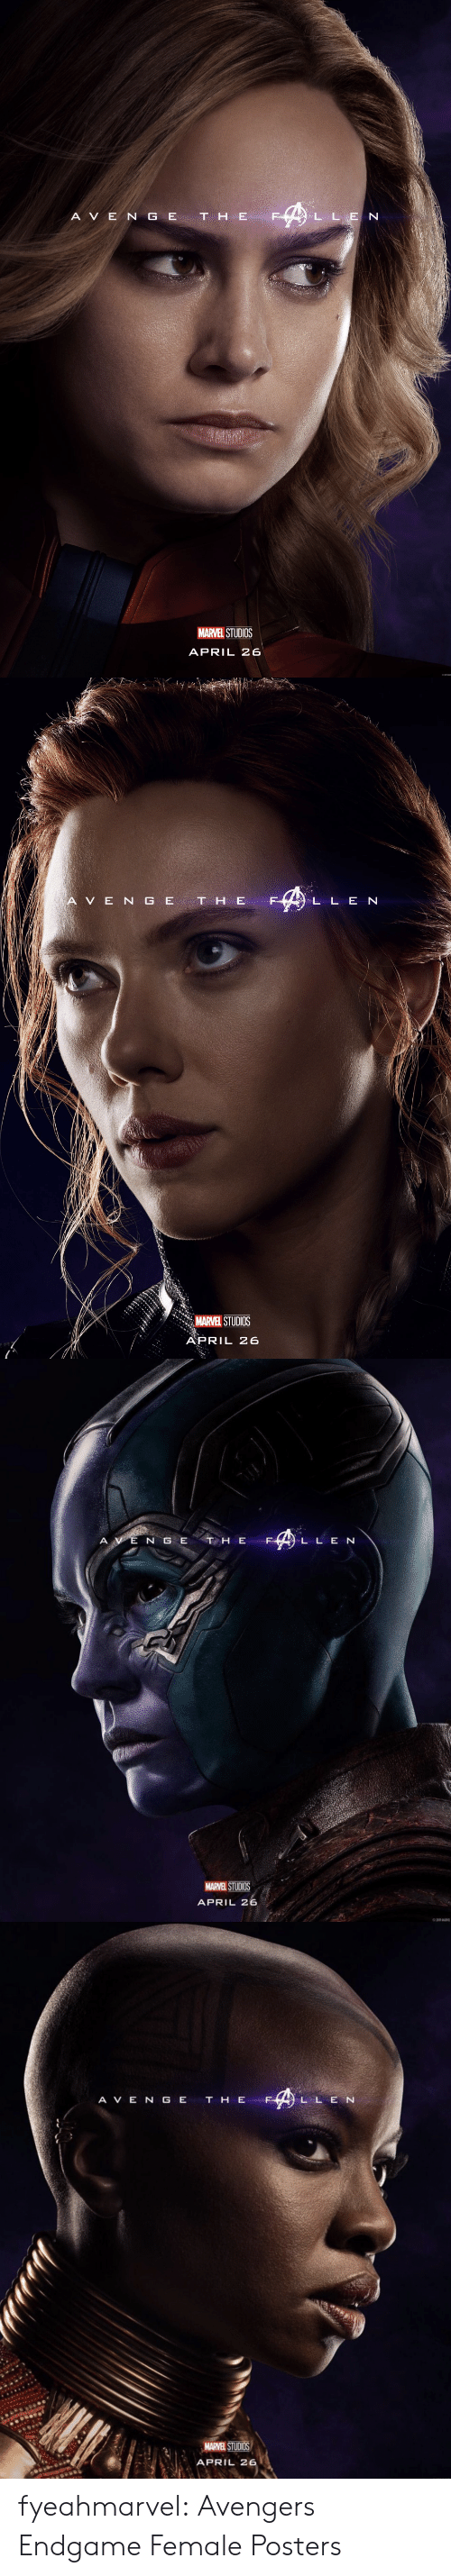 Target, Tumblr, and Avengers: A V E N G E  THEF  L L E N  酷.  MARVEL STUDIOS  APRIL 26   A V E N G E T H E  LL E N  MARVEL STUDIOS  APRIL 26   L L E N  MARVEL STUDIOS  APRIL 26  ©2019 MARn   A V E N G E T H E  LL E N  MARVEL STUDIOS  APRIL 26 fyeahmarvel:  Avengers Endgame Female Posters